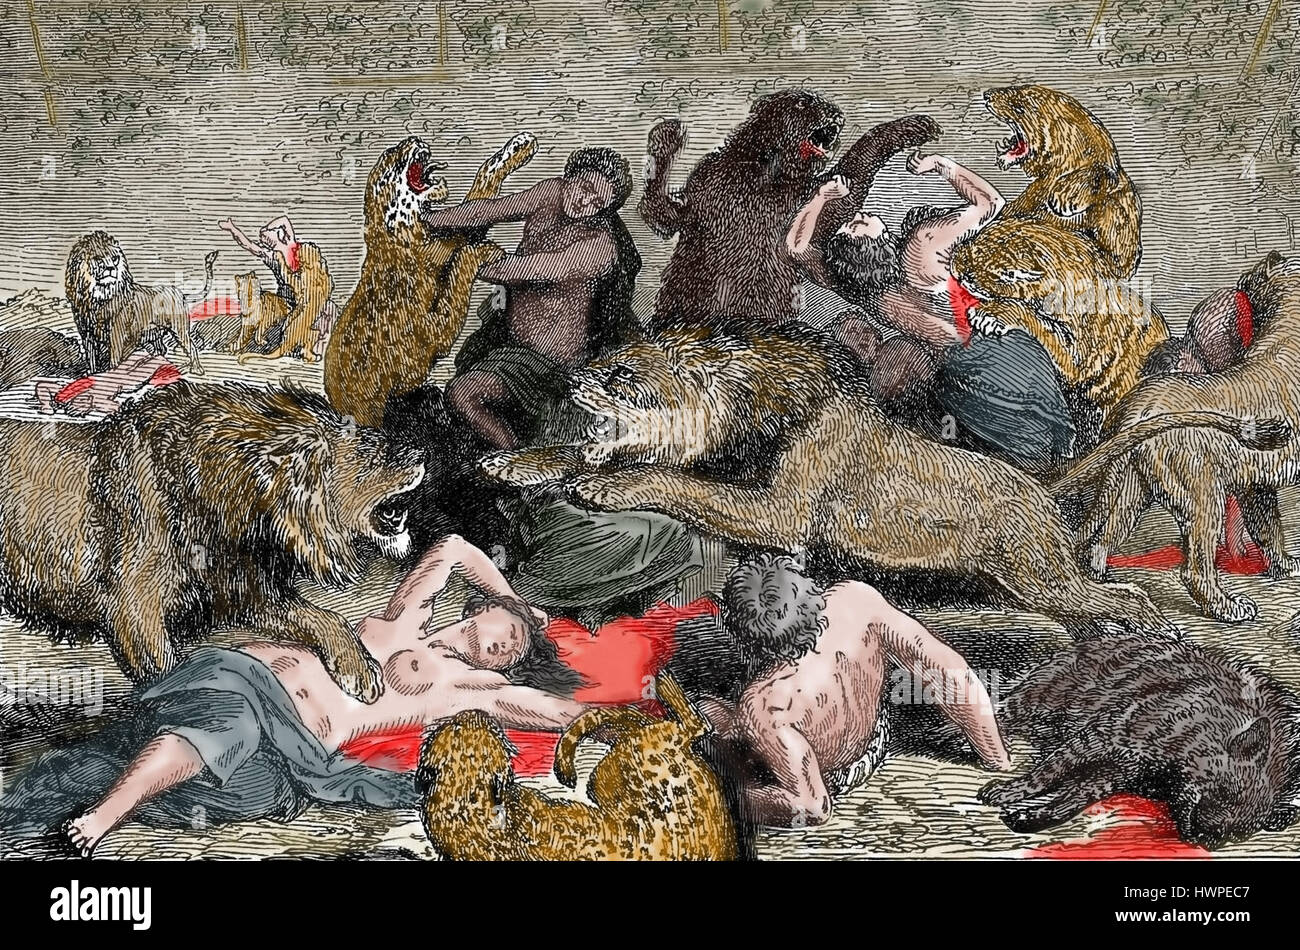 Roman Empire. Persecution of Christians. Amphitheatre.  Christians martyrs. Engraving, Color. 19th century. - Stock Image